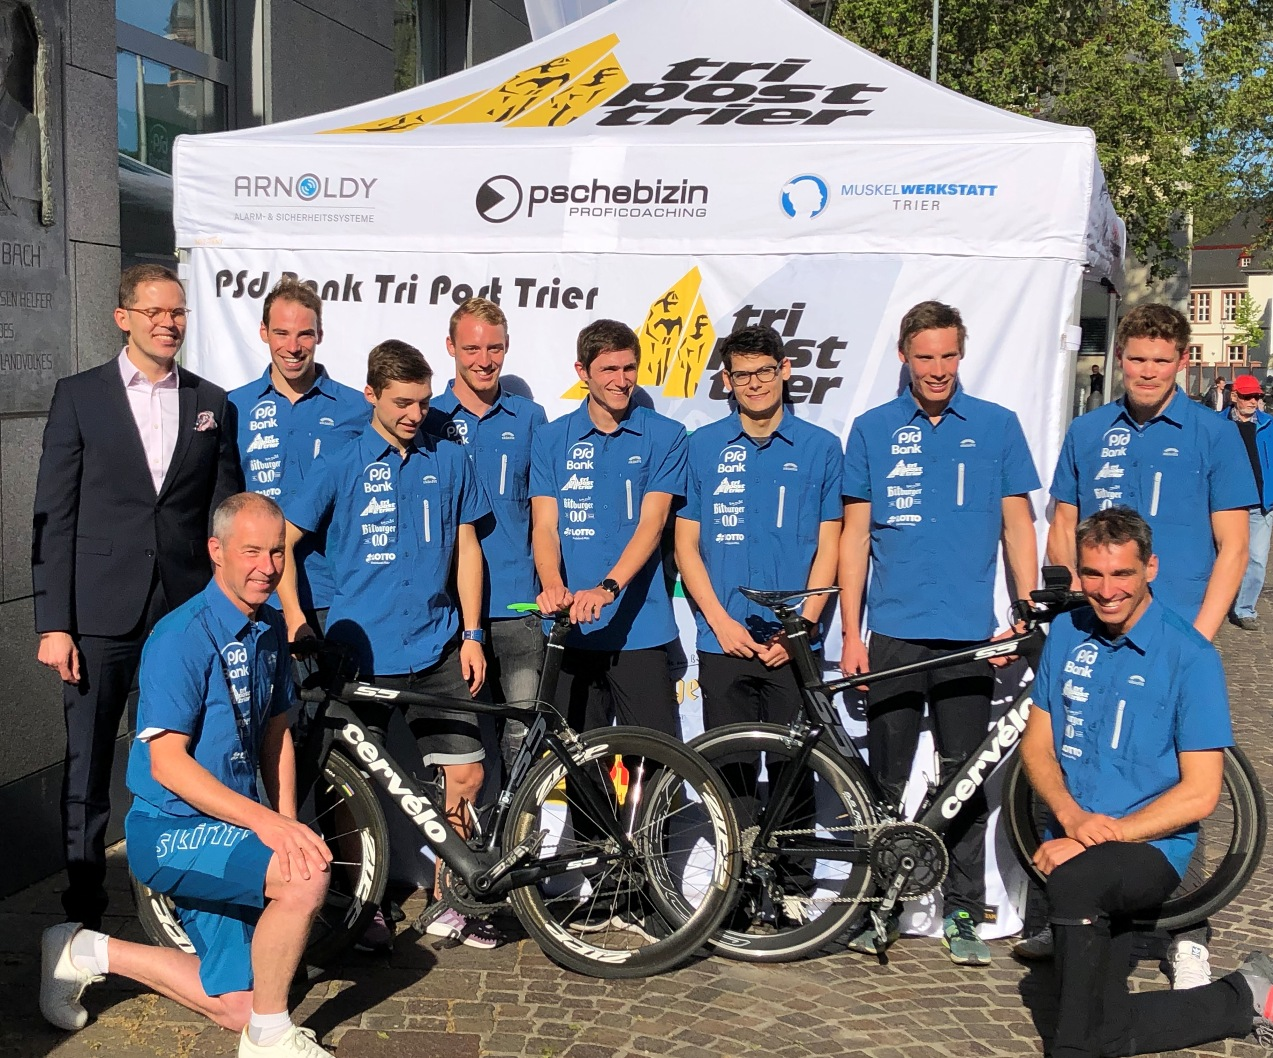 PSD Bank Tri Post Trier Teampräsentation